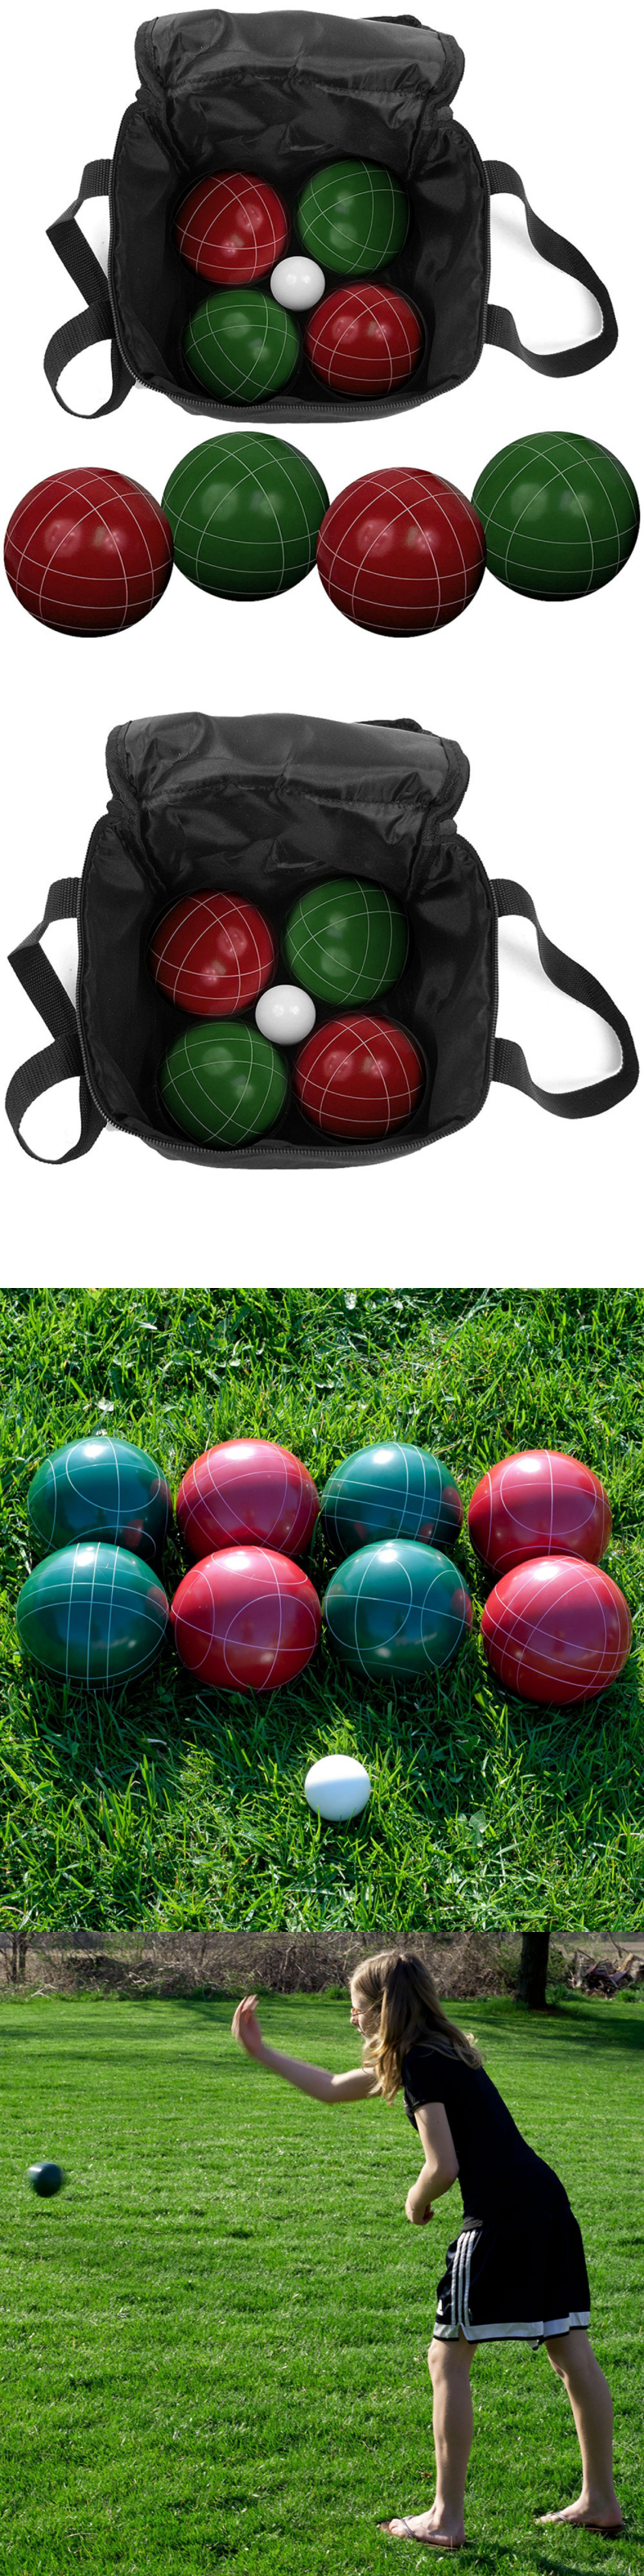 Bocce Ball 79788: Trademark Games Bocce Ball Set With Carrying Case - Various Licenses BUY IT NOW ONLY: $59.99